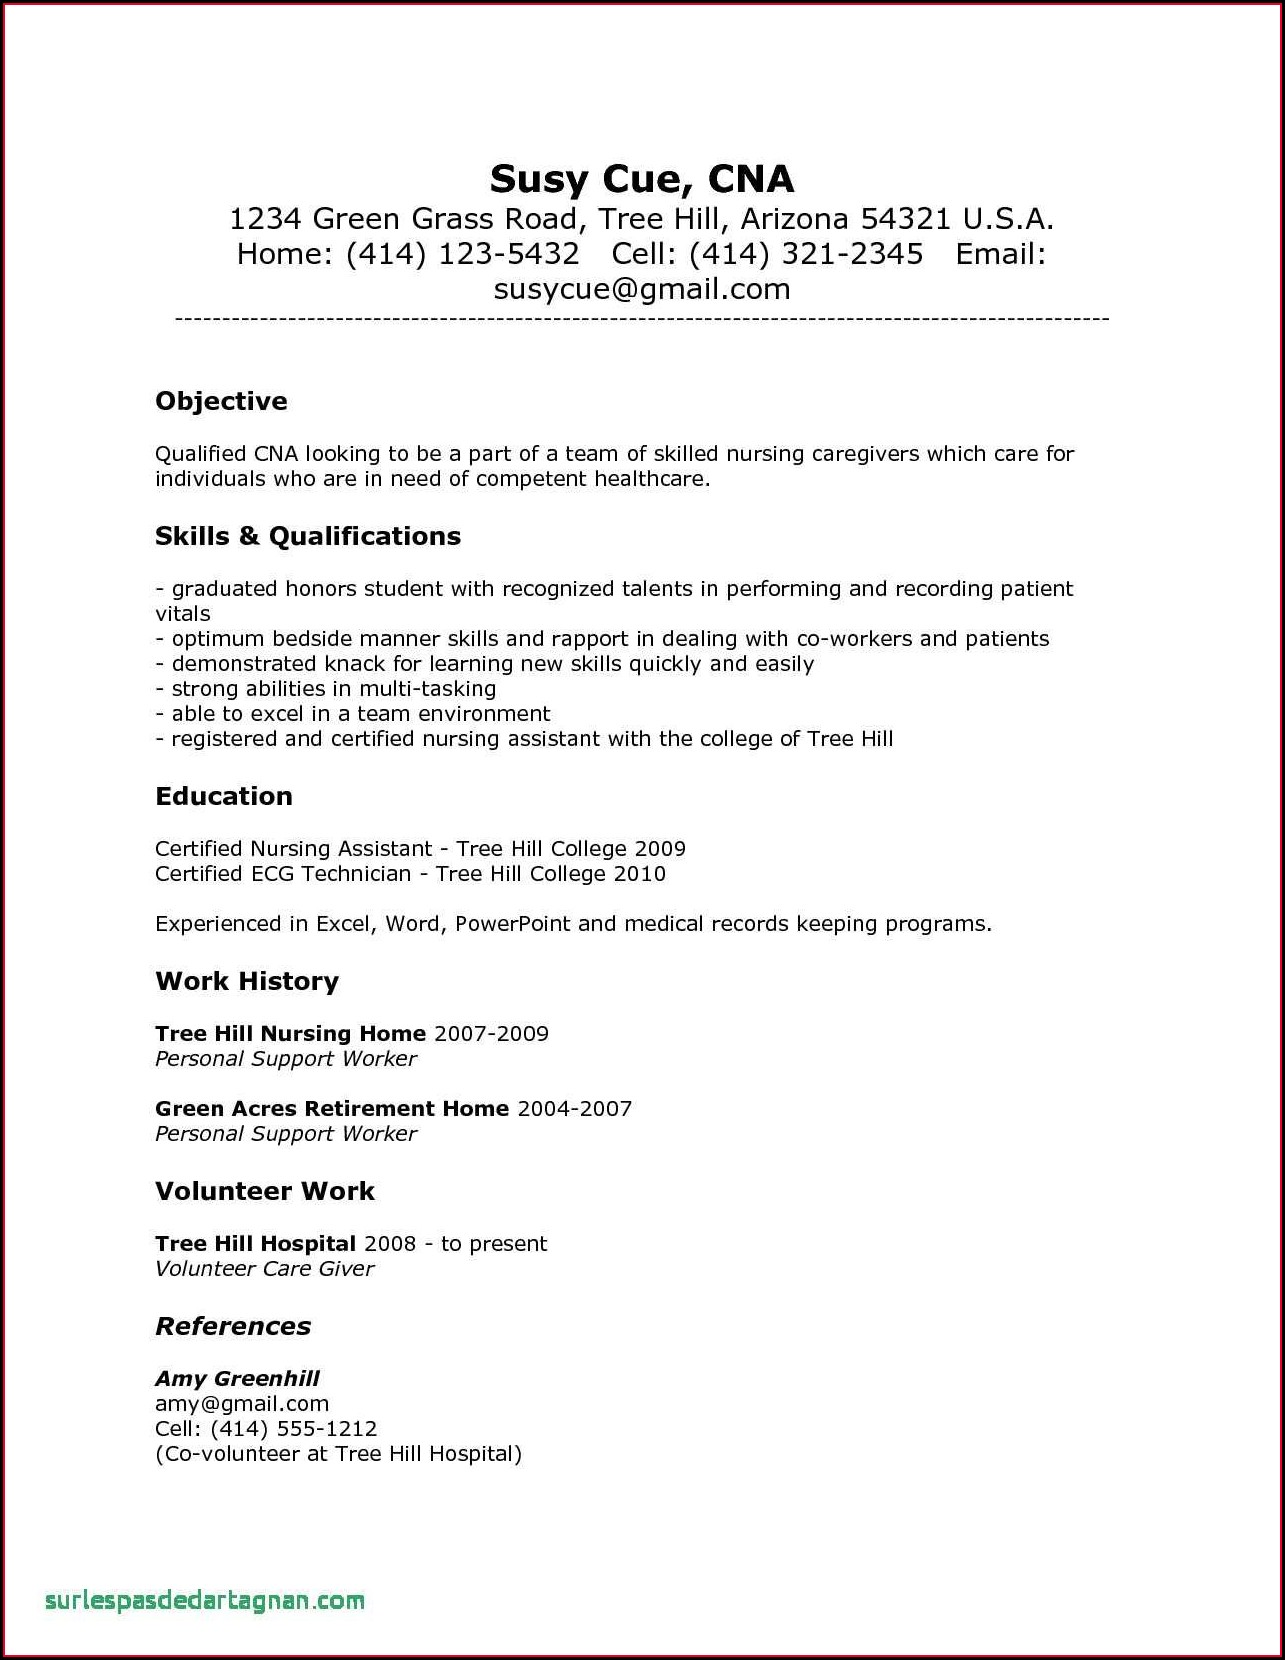 Resume Skills And Abilities Nursing Assistant